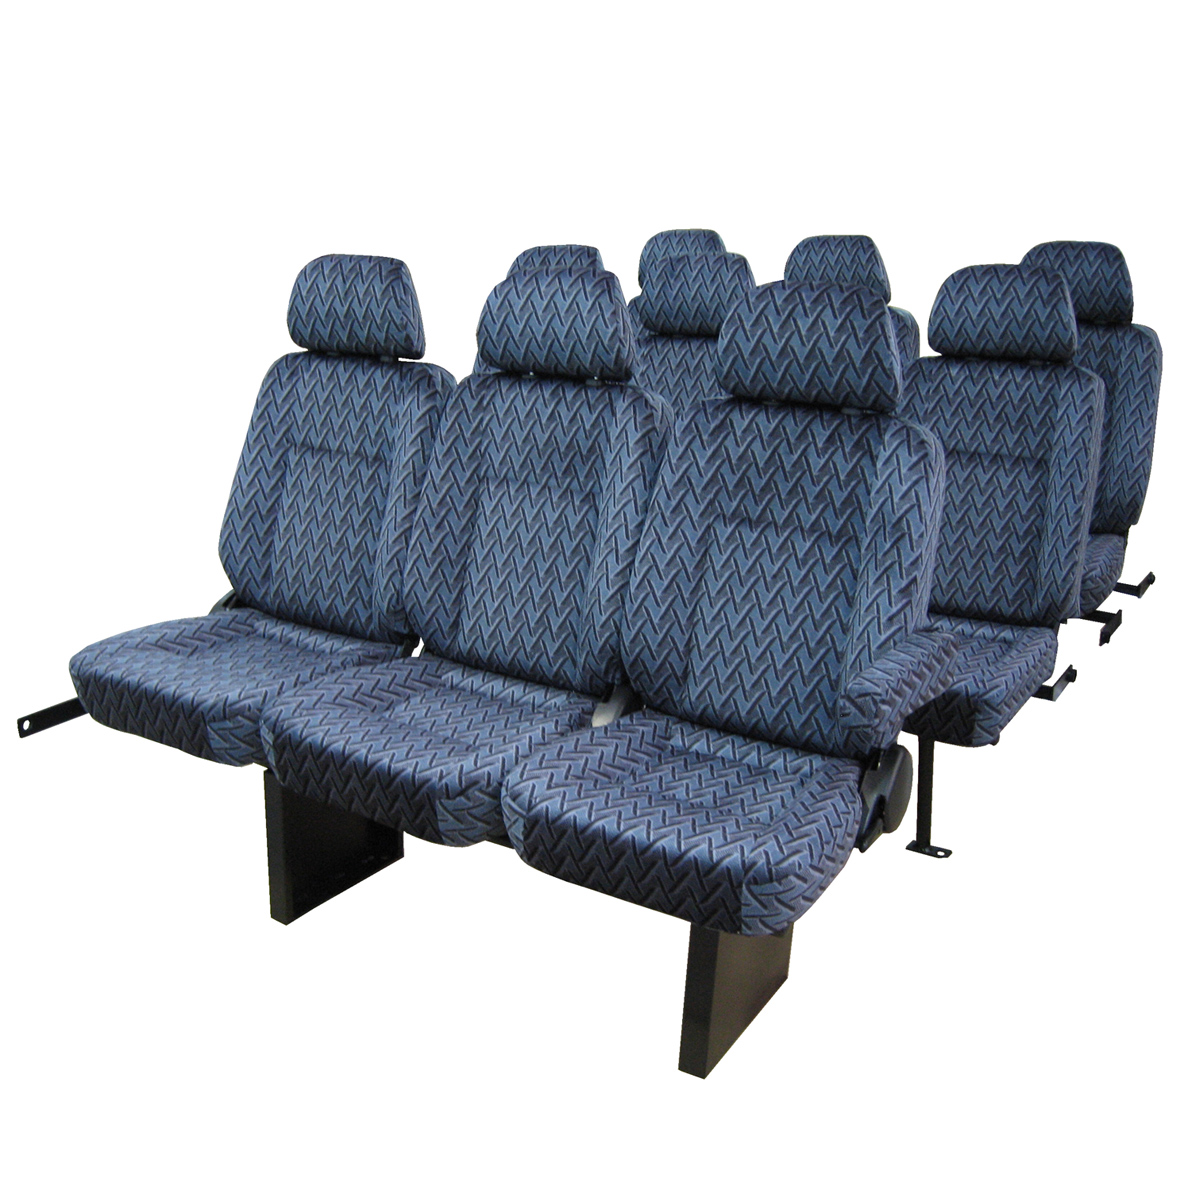 sscus van seats products